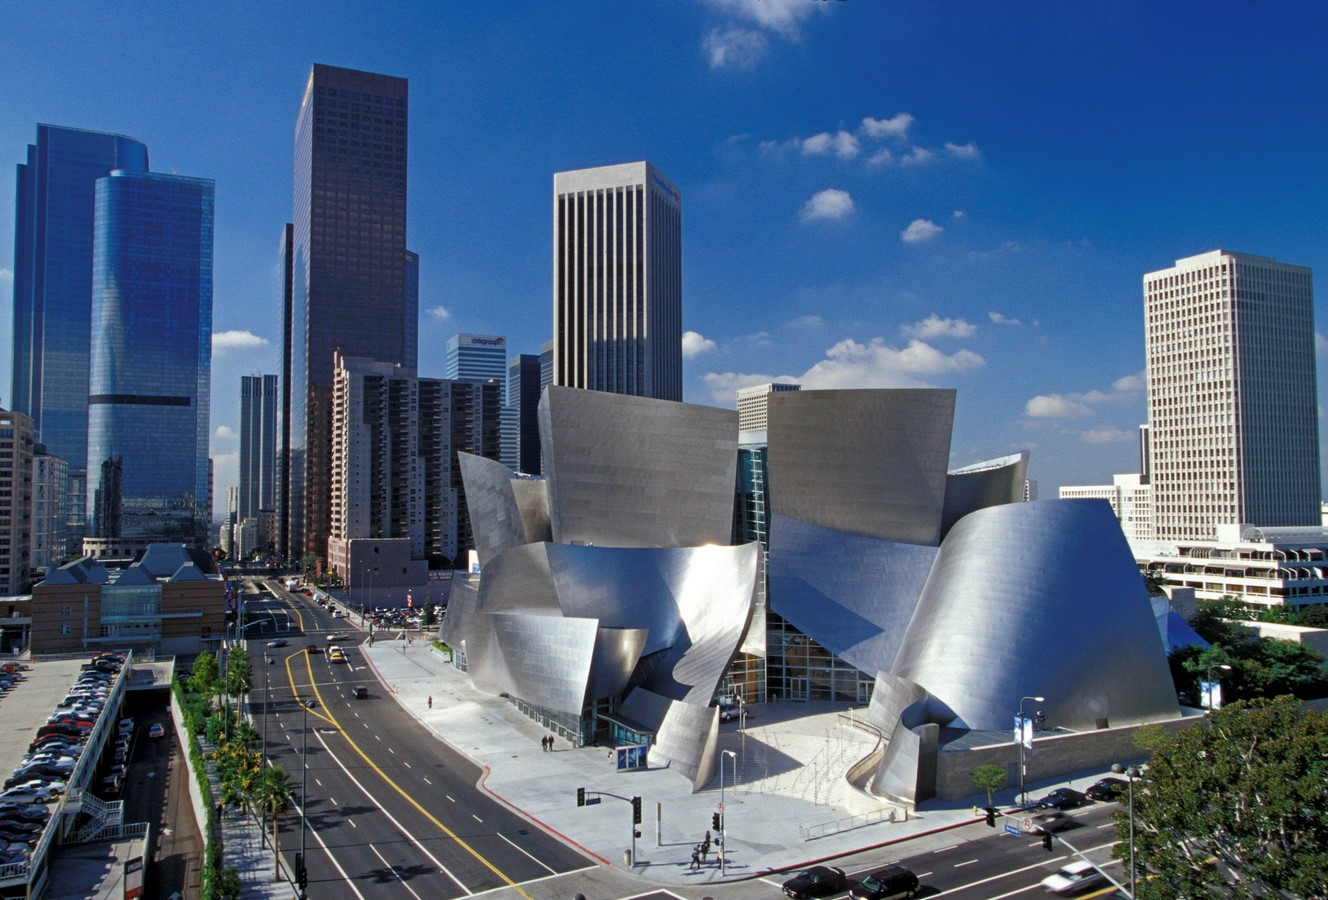 Walt Disney Concert Hall by Frank O Gehry: The greatest building of our time - Sheet3